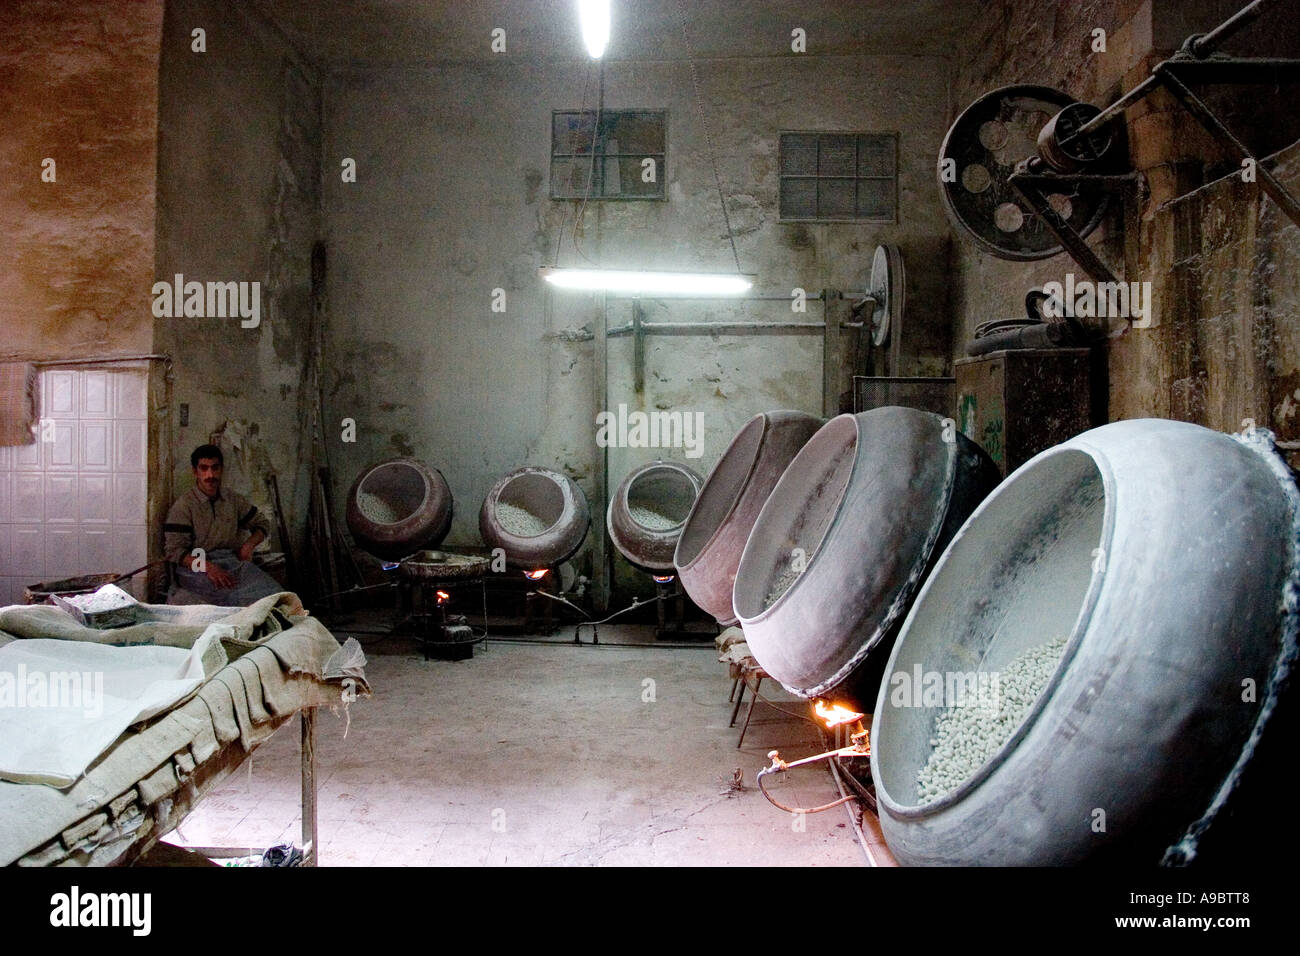 naplus palestin the west bank candy factory february 2006 - Stock Image